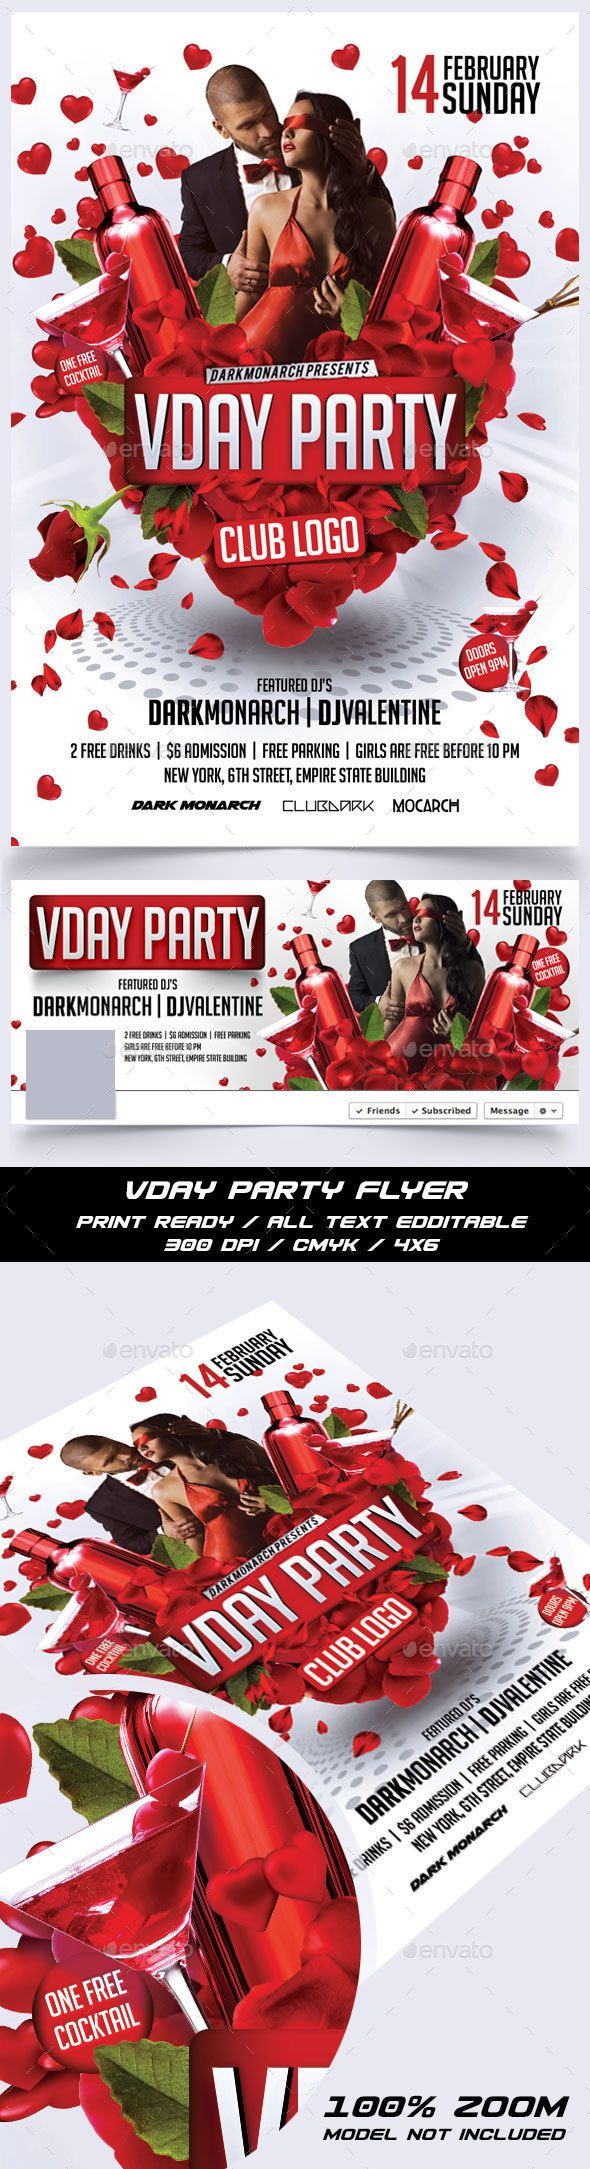 Valentine Day Party Flyer Template PSD #design Download: http://graphicriver.net/item/valentine-day-party-flyer/14291227?ref=ksioks